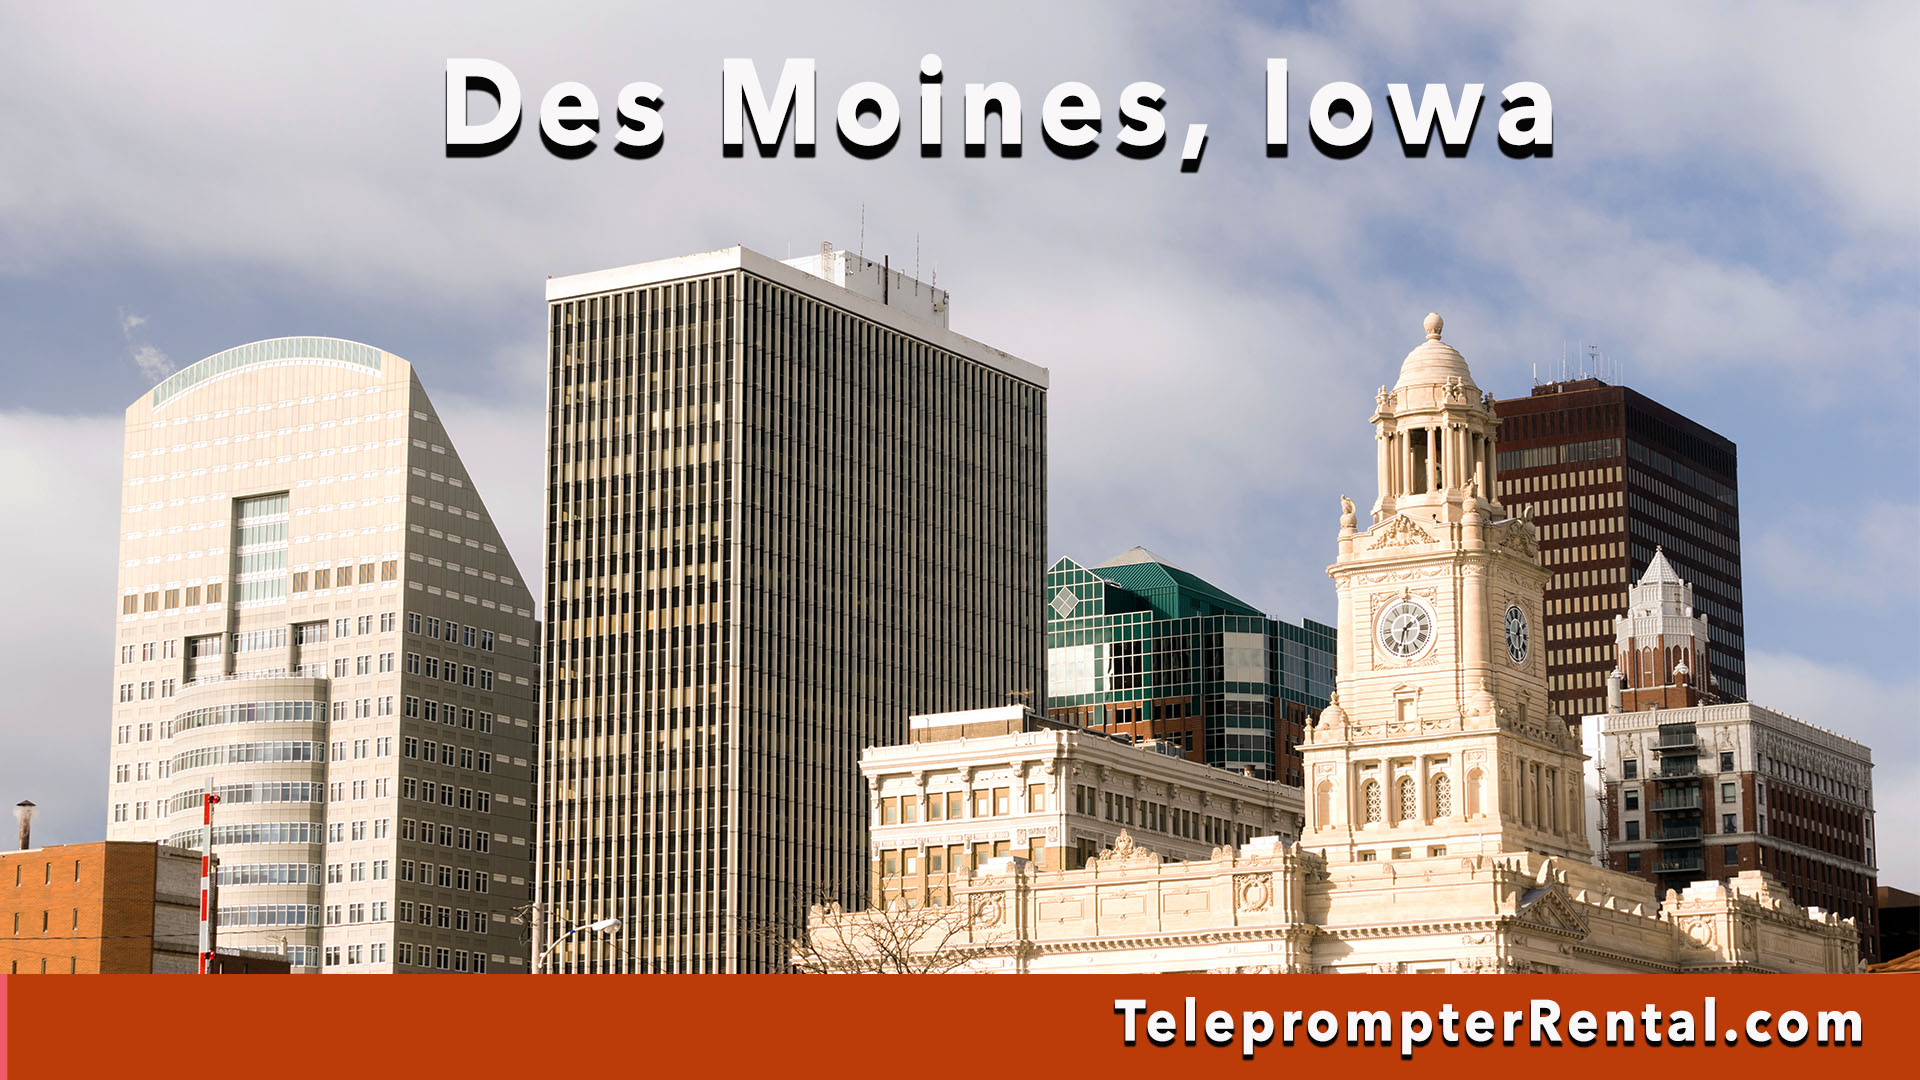 Des Moines, Iowa - Teleprompter Rental